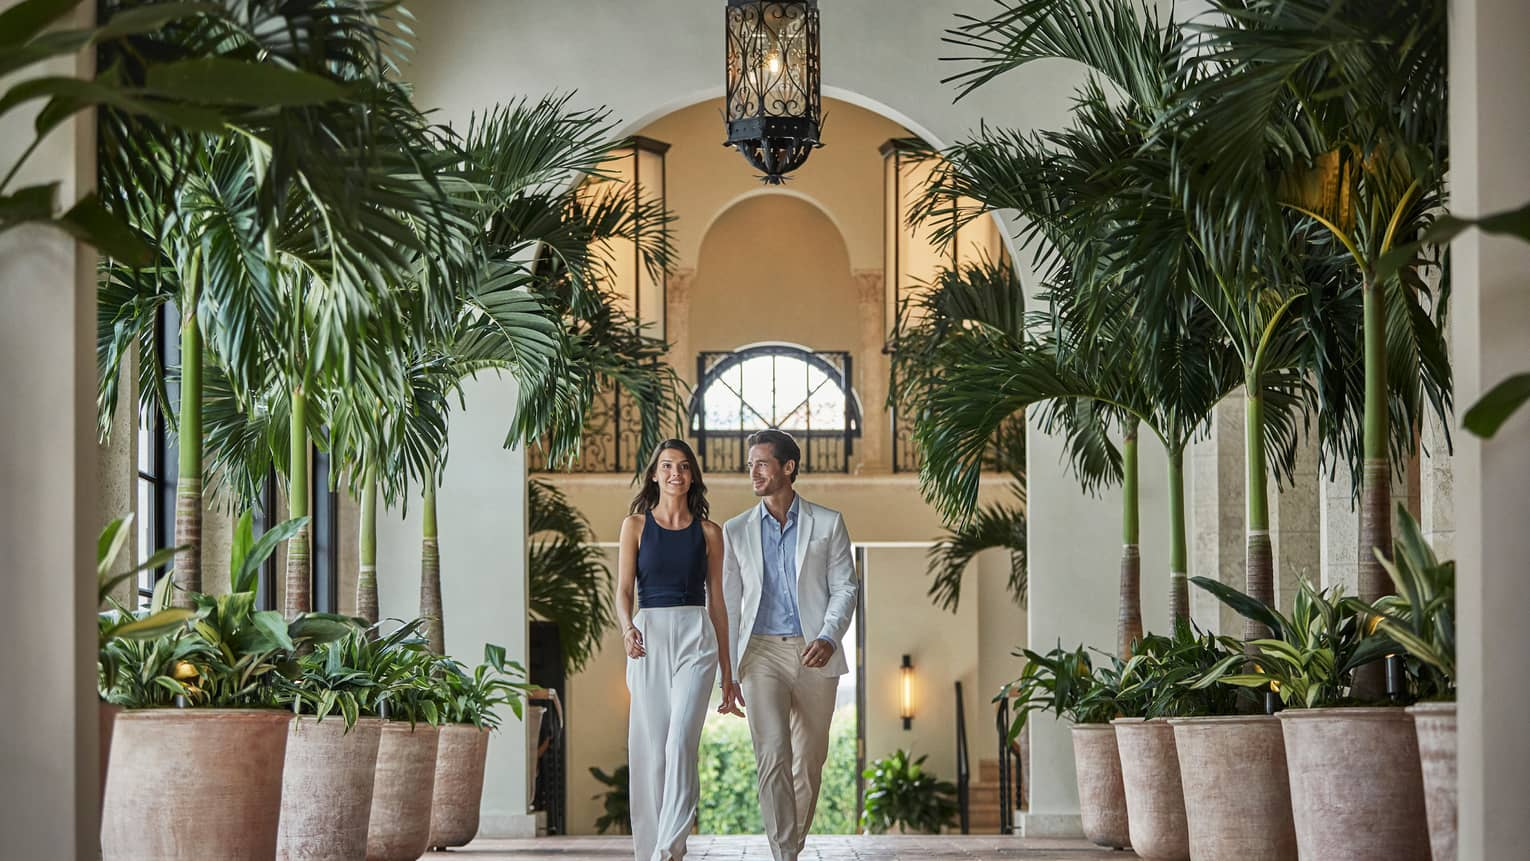 Couple walks down hallway lined with potted palm trees under arched ceiling